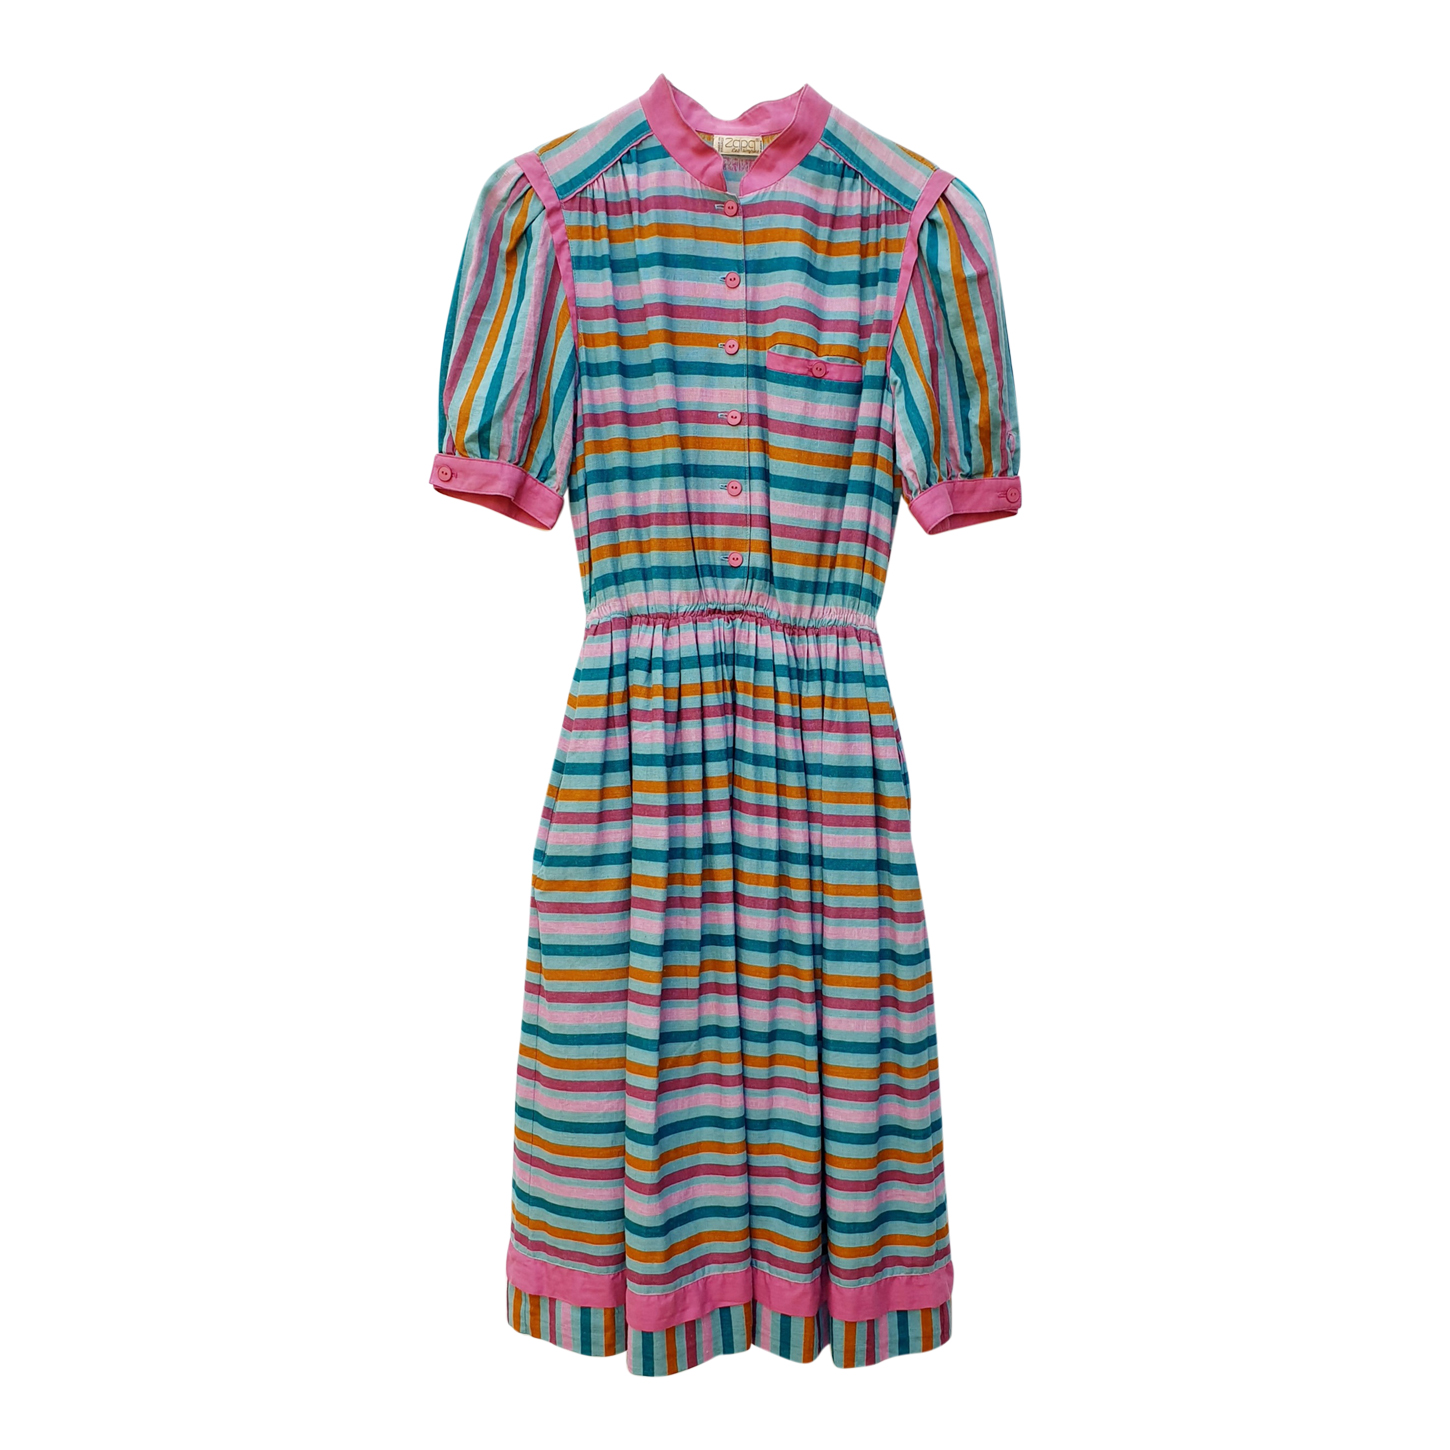 Robe à rayures multicolores